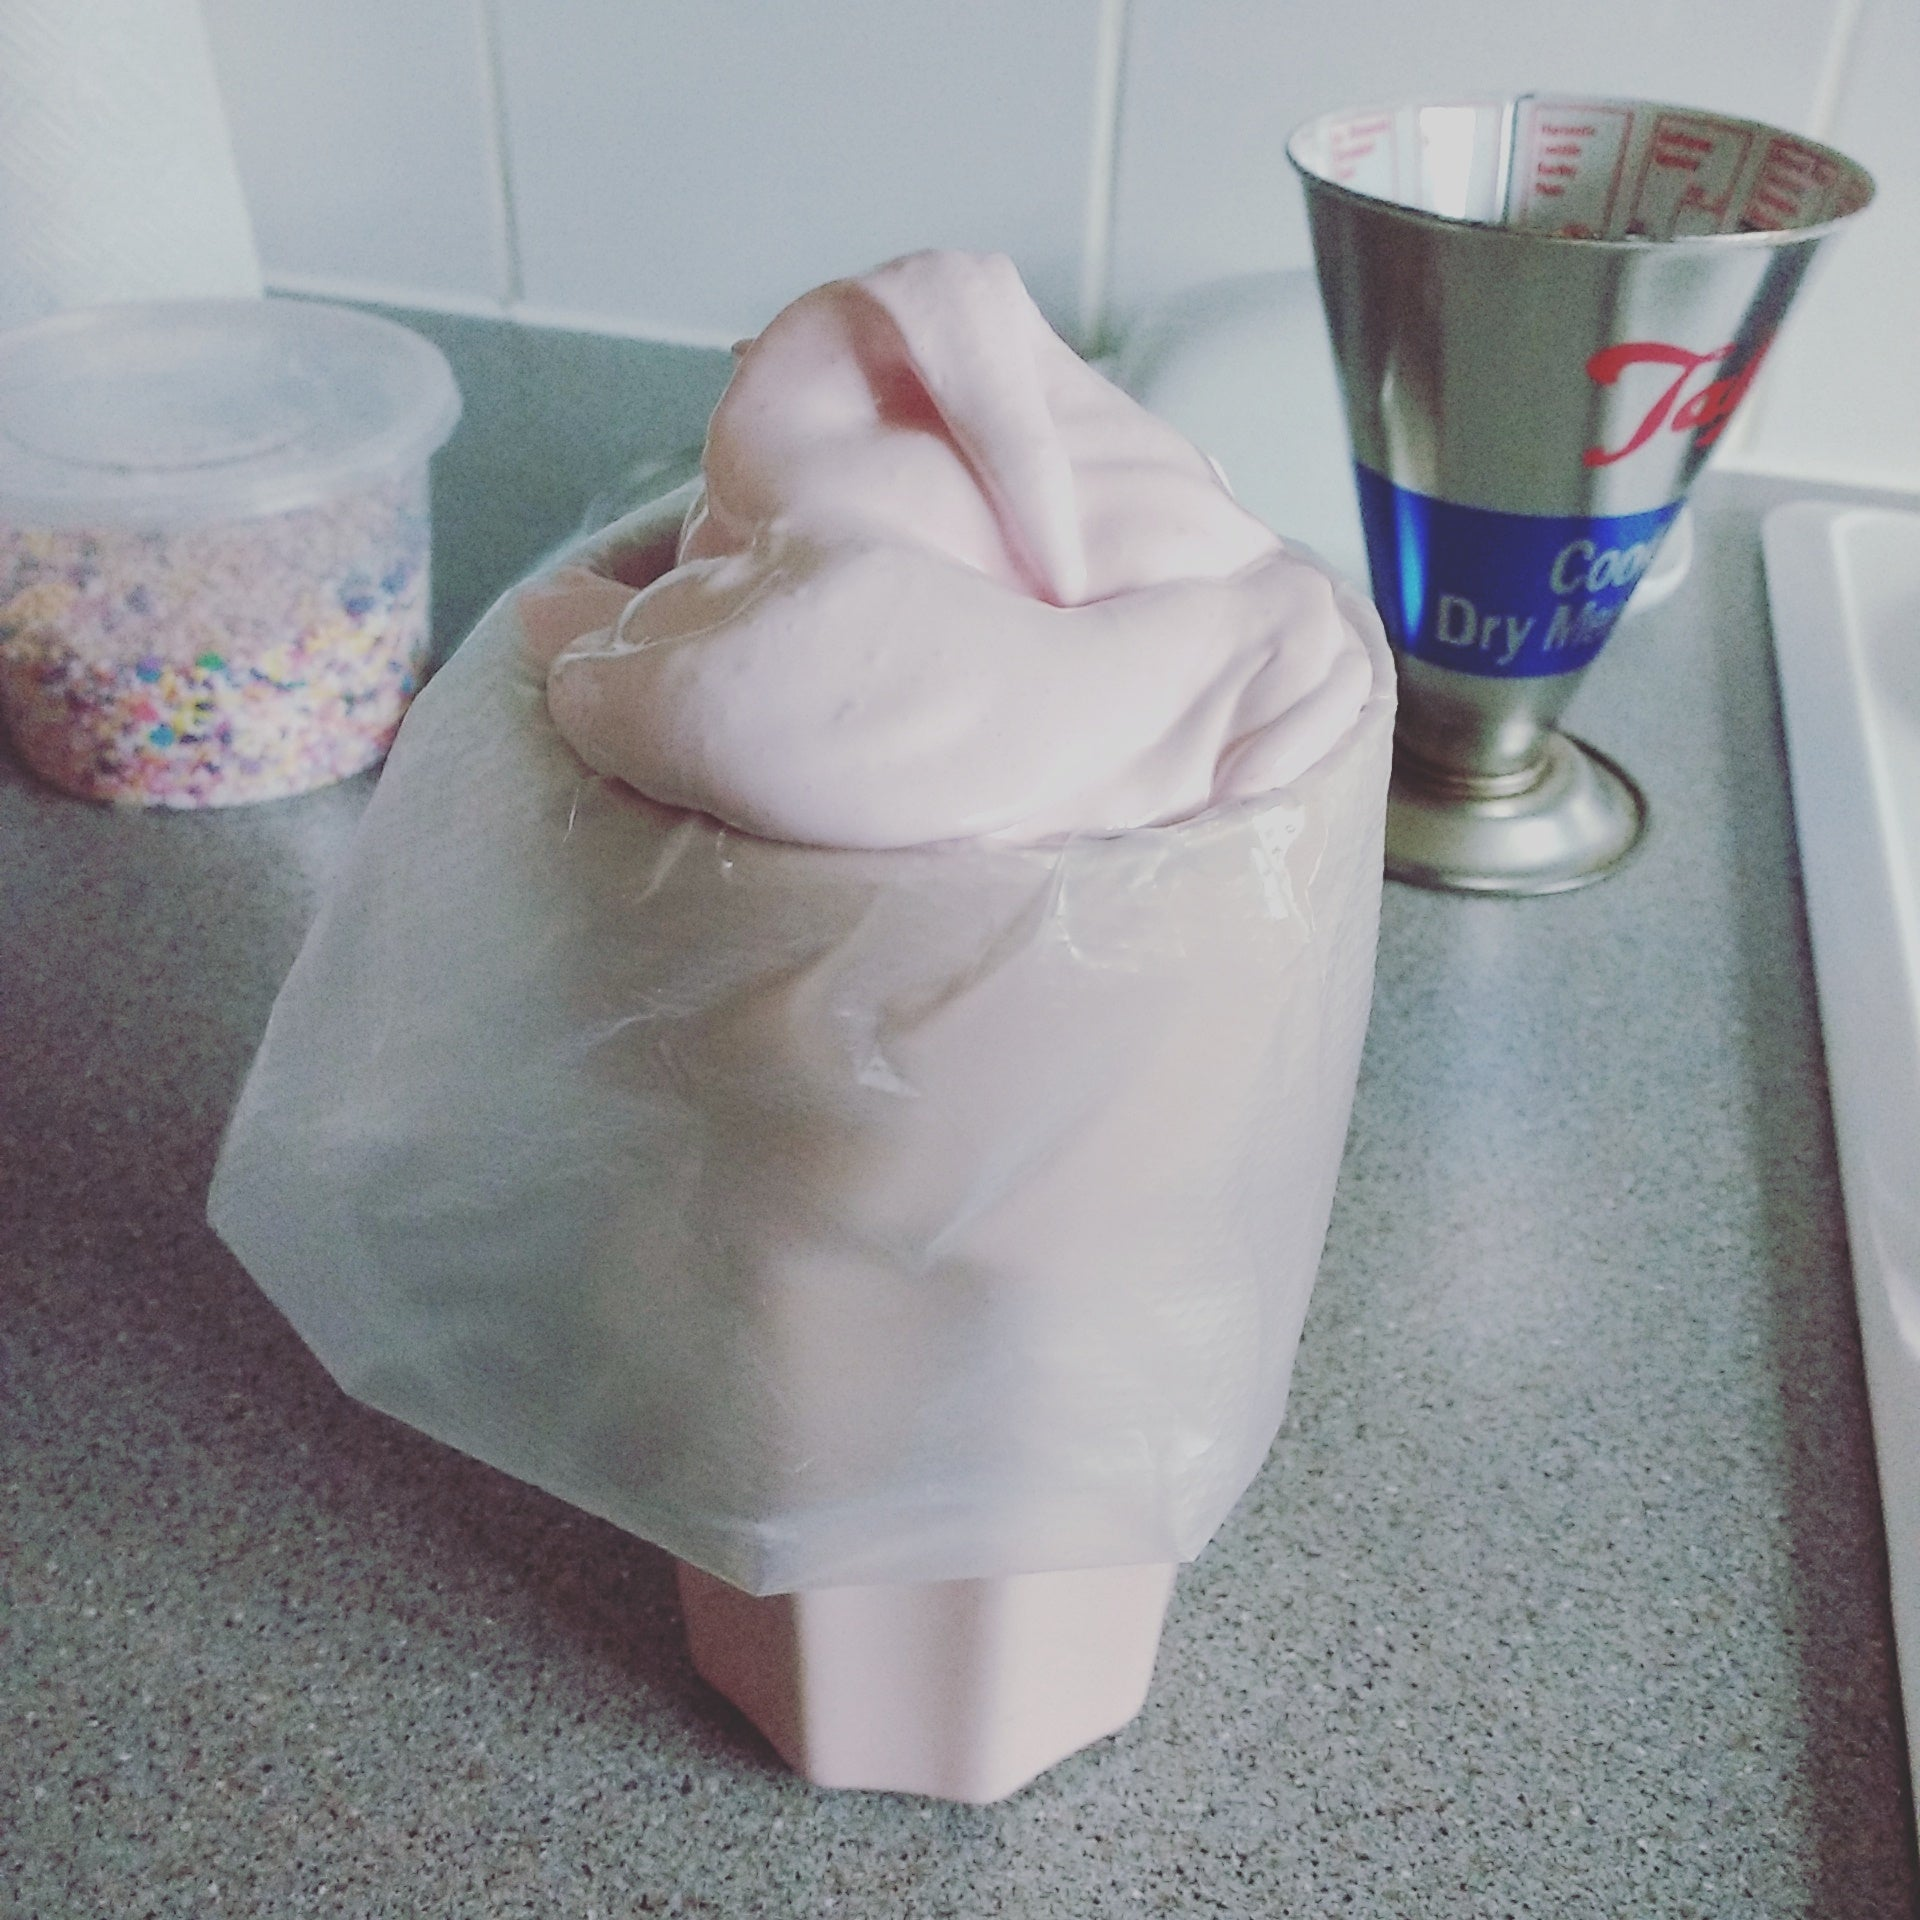 Pour marshmallow into piping bag